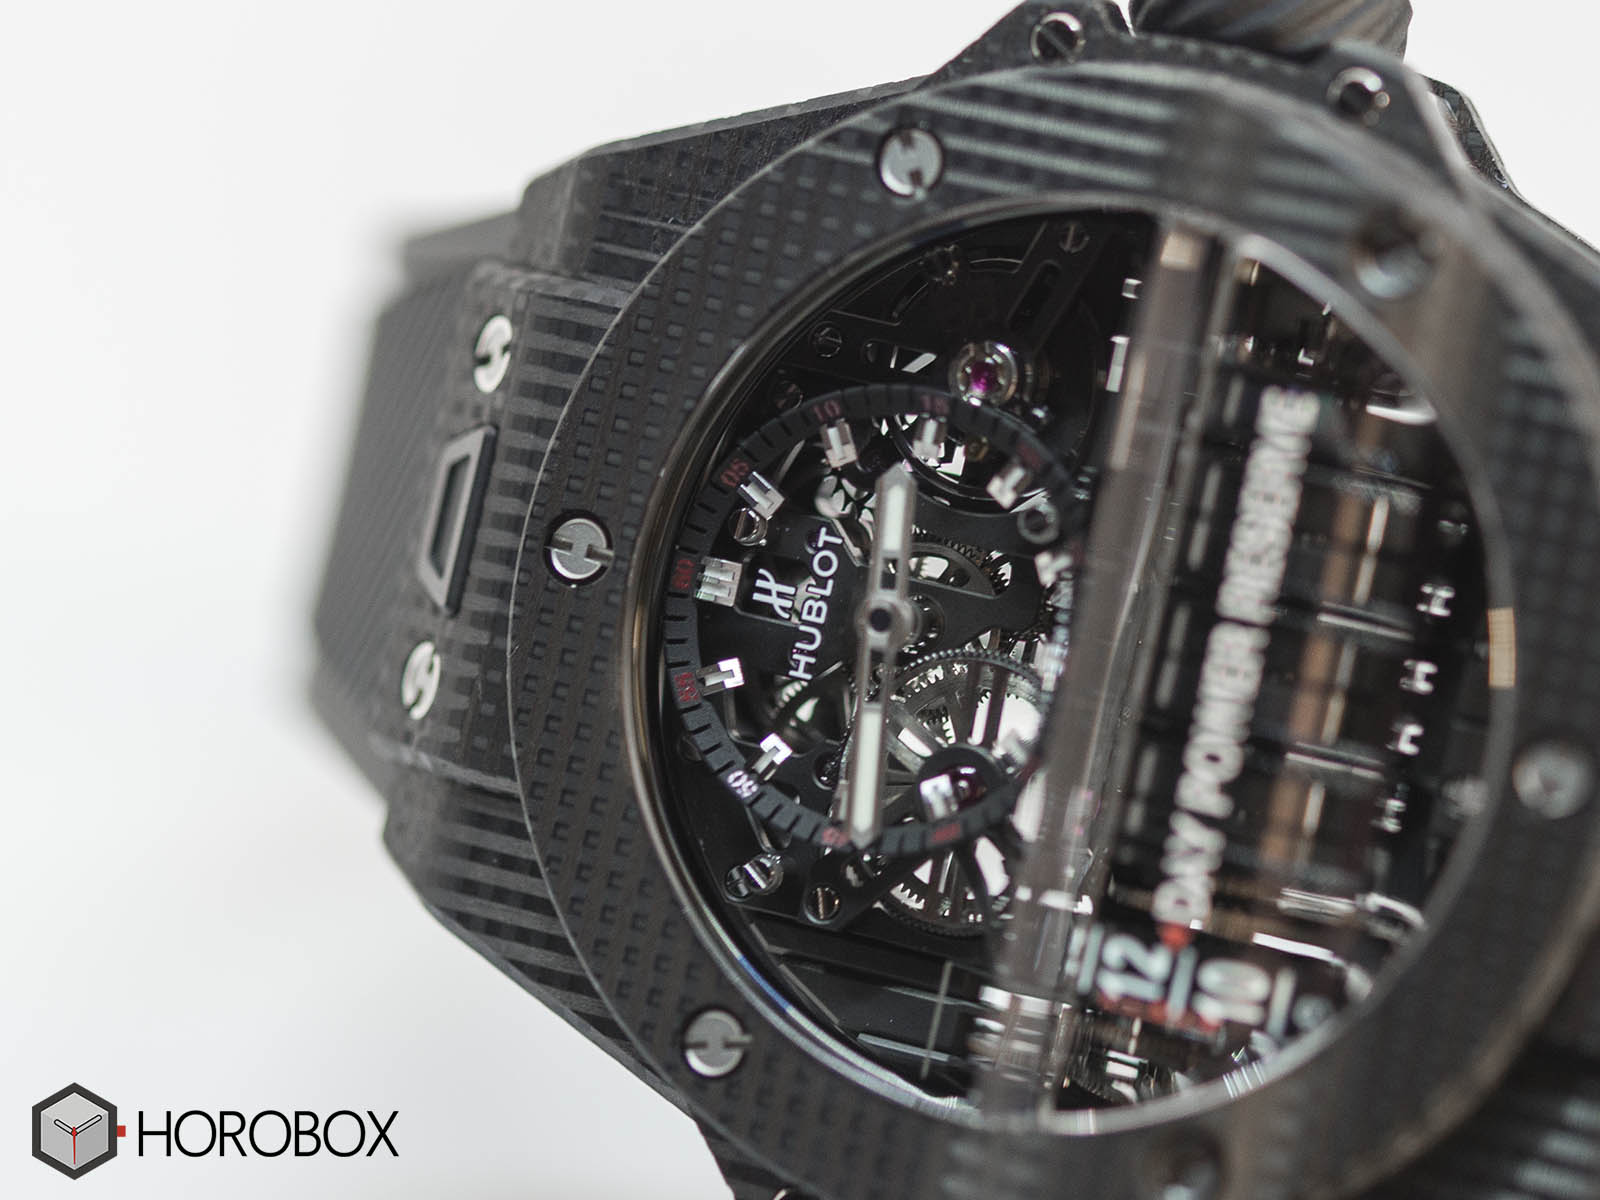 911-qd-0123-rx-hublot-mp-11-power-reserve-14-days-2.jpg